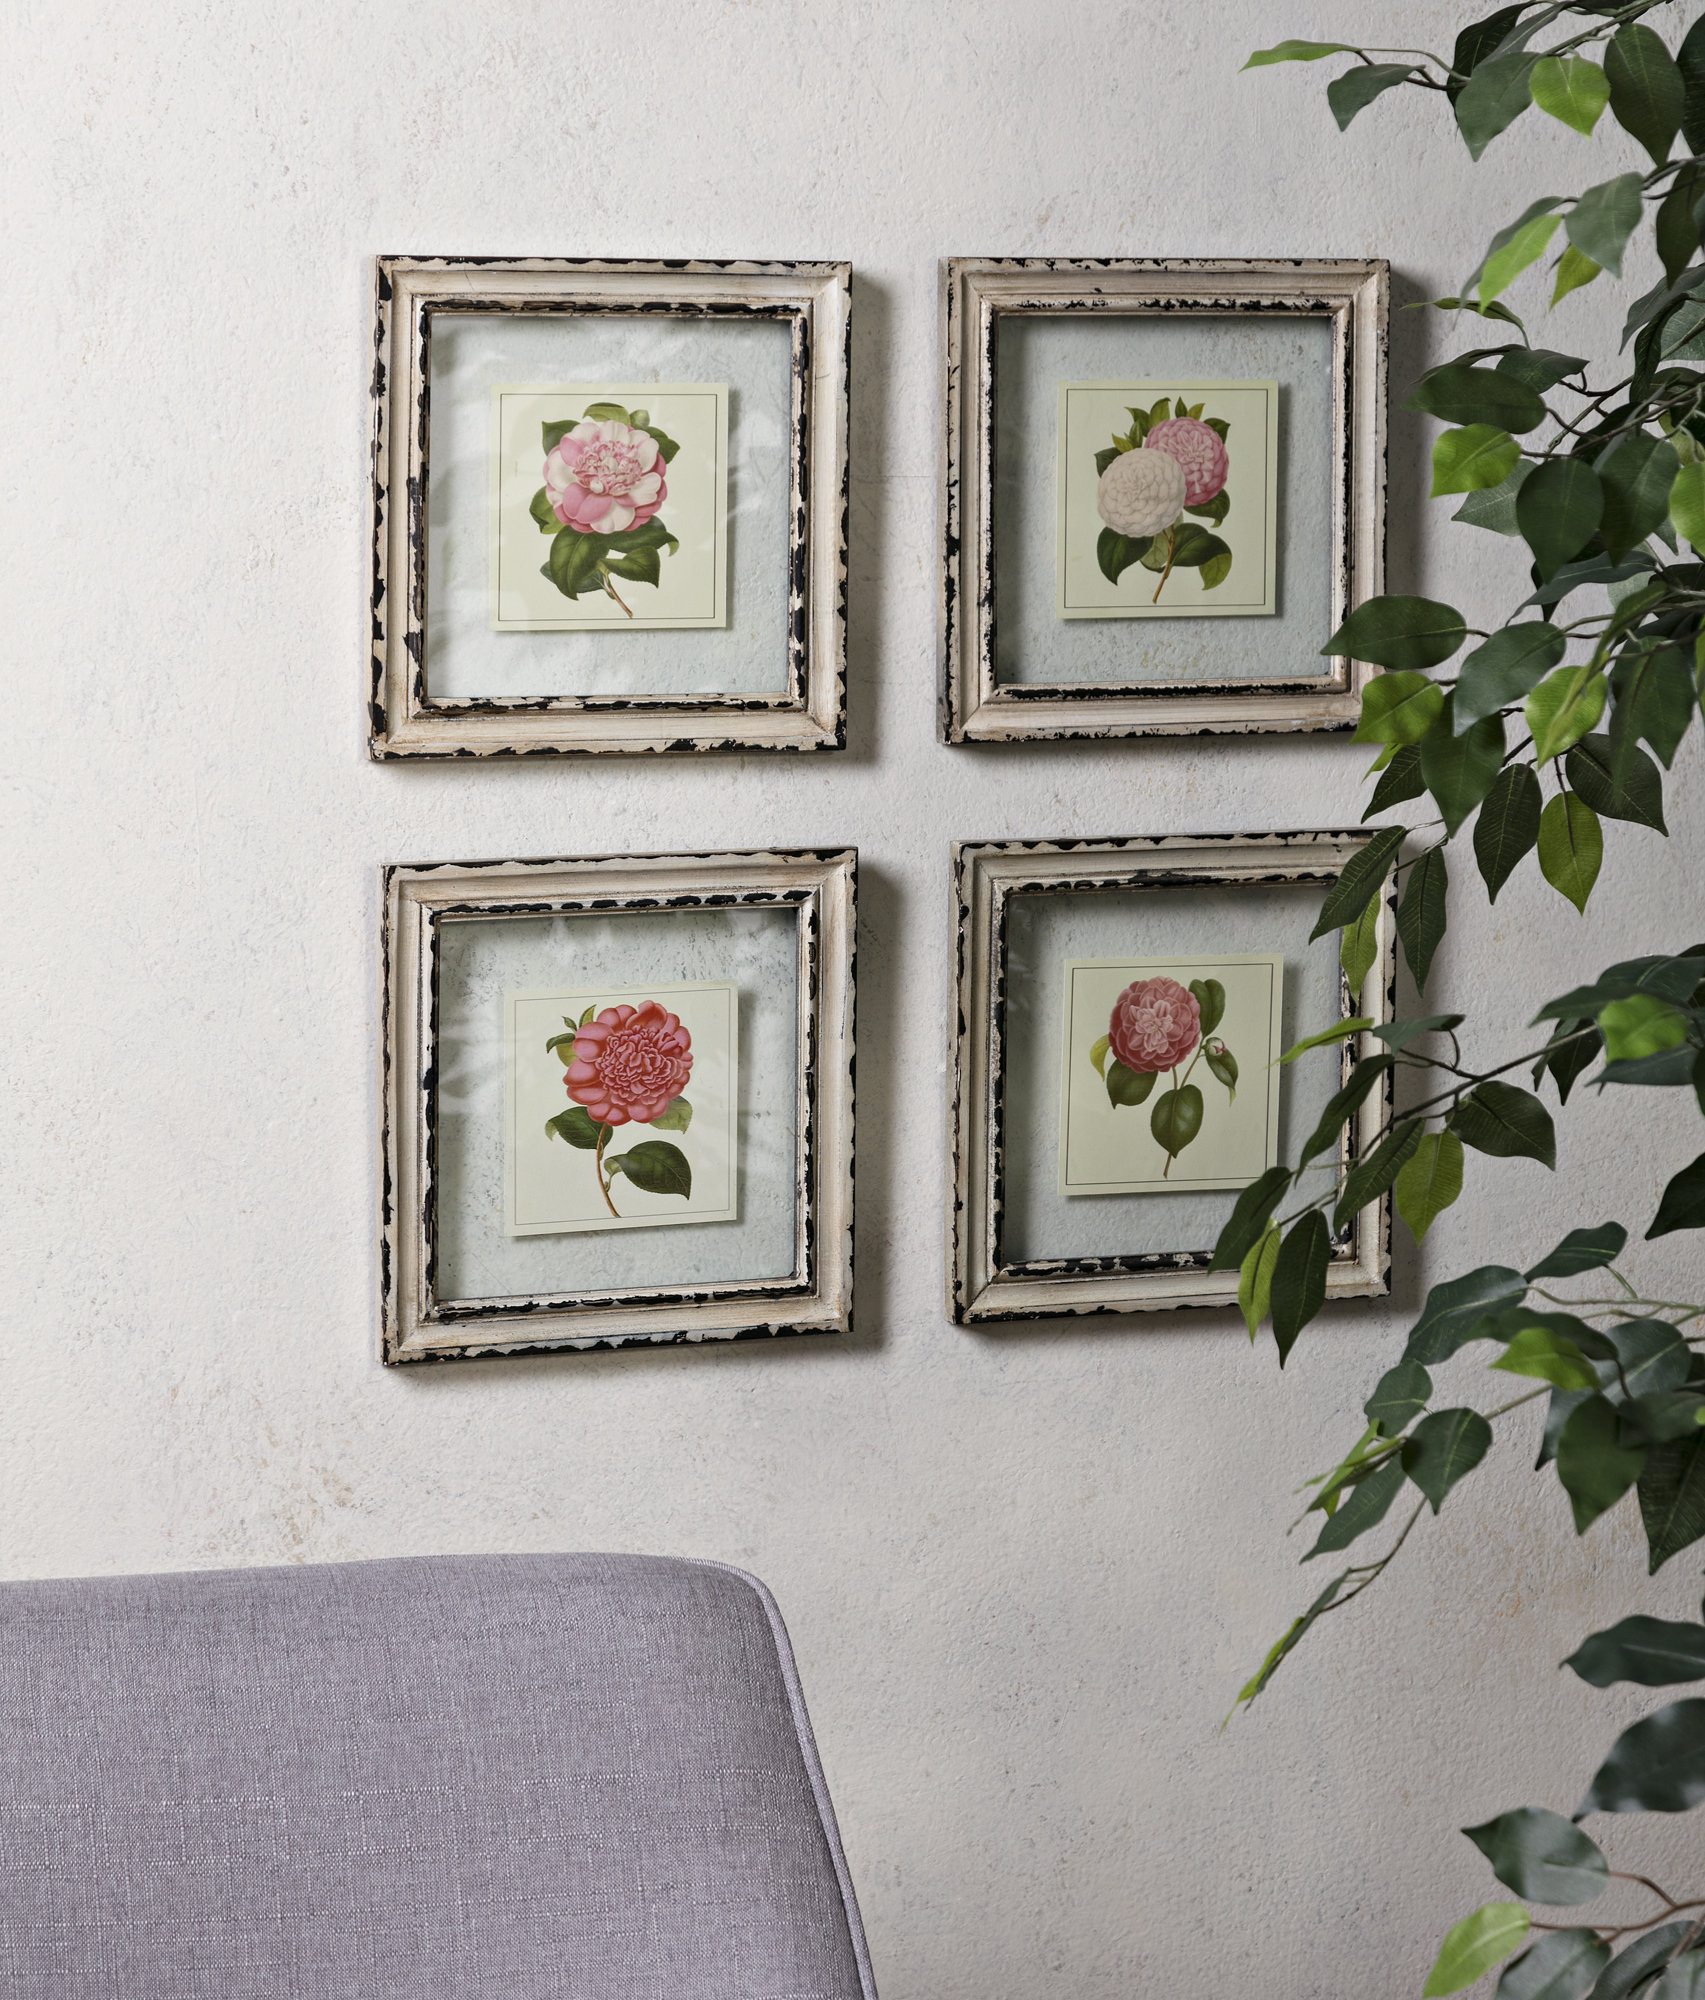 Watercolor Floral Wall Art | Wayfair Throughout Floral Wreath Wood Framed Wall Decor (View 13 of 30)